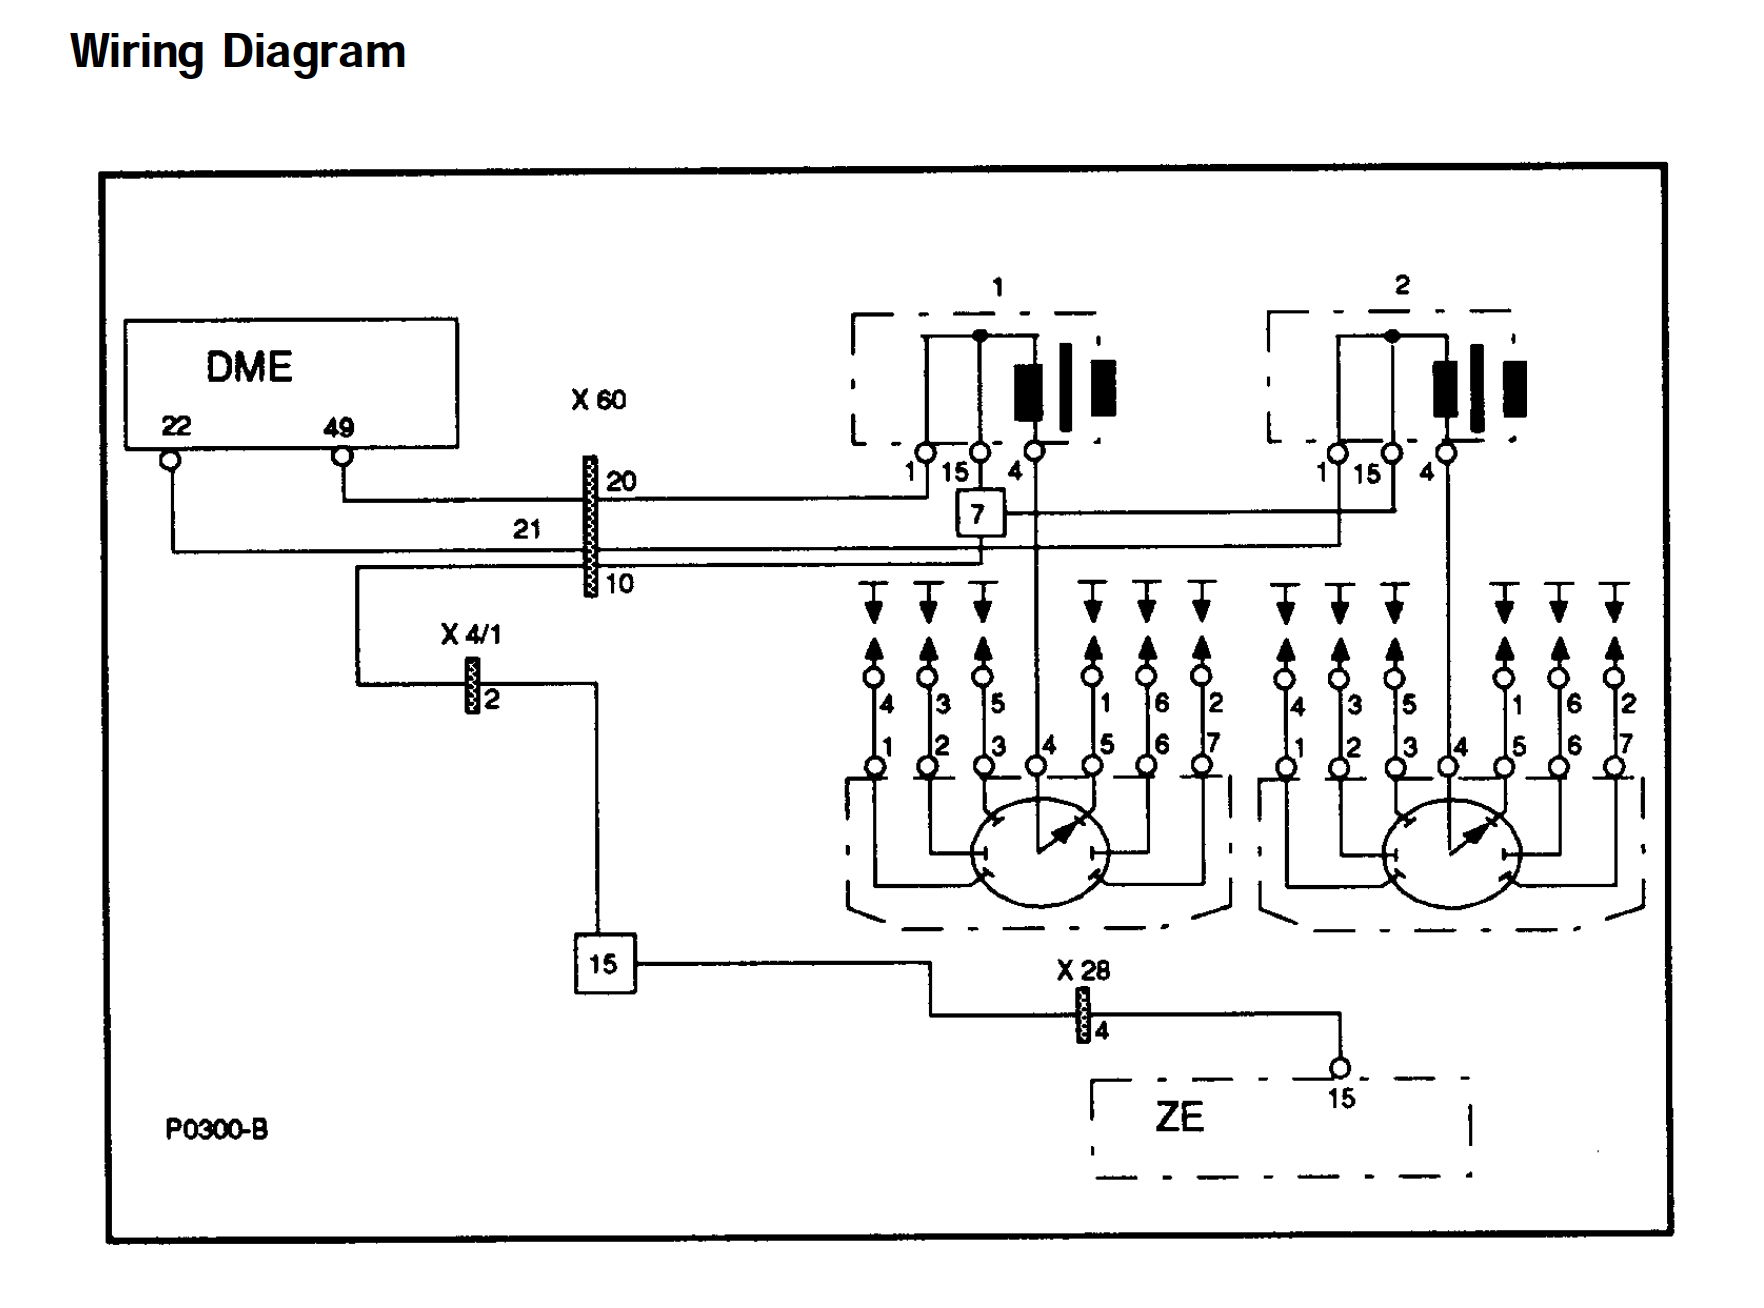 1973 dodge charger ignition wiring diagram 91 ezgo marathon 69 and fuse box